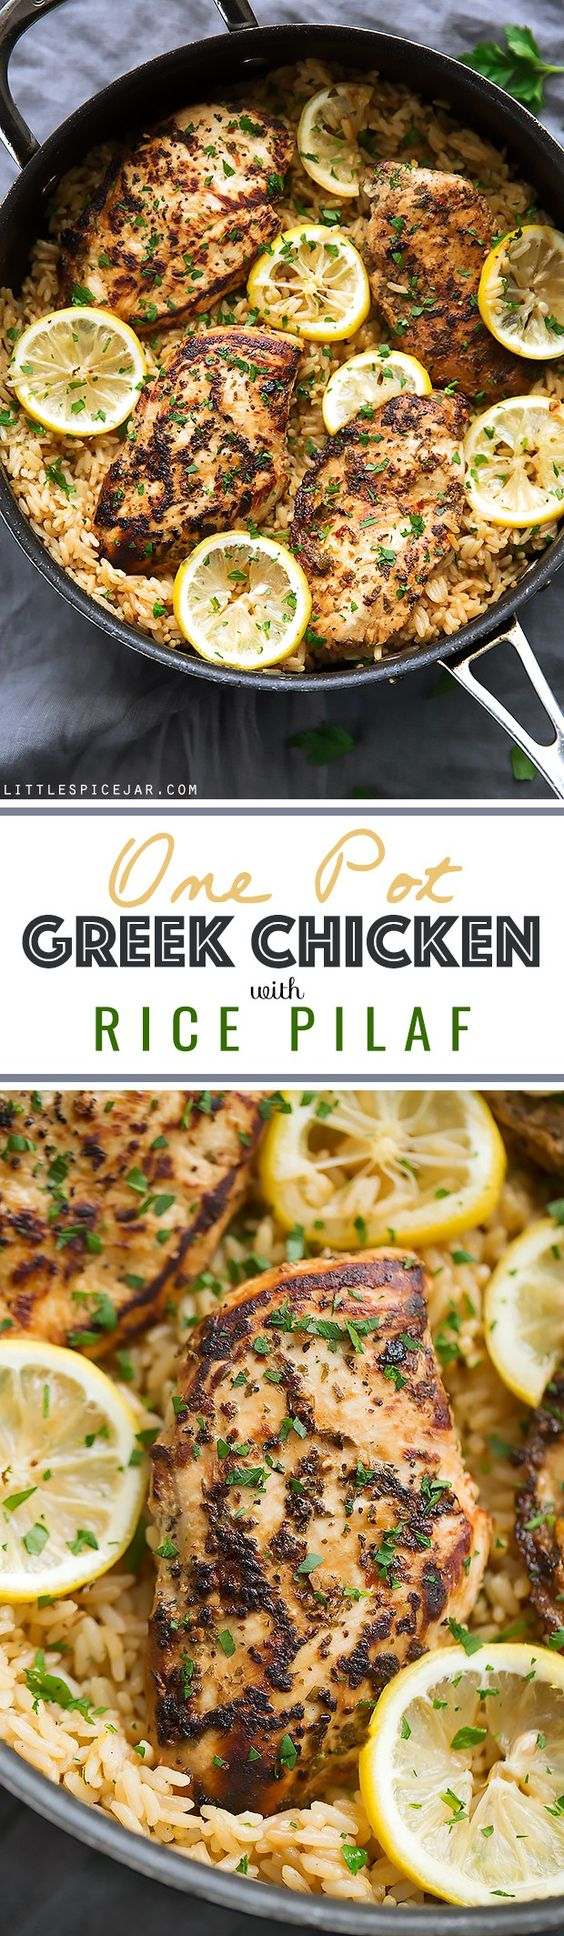 One Pot Greek Chicken and Rice Pilaf - a simple one pot dinner that's ready in 45 minutes and tastes lemon/herby fresh! | Littlespicejar.com